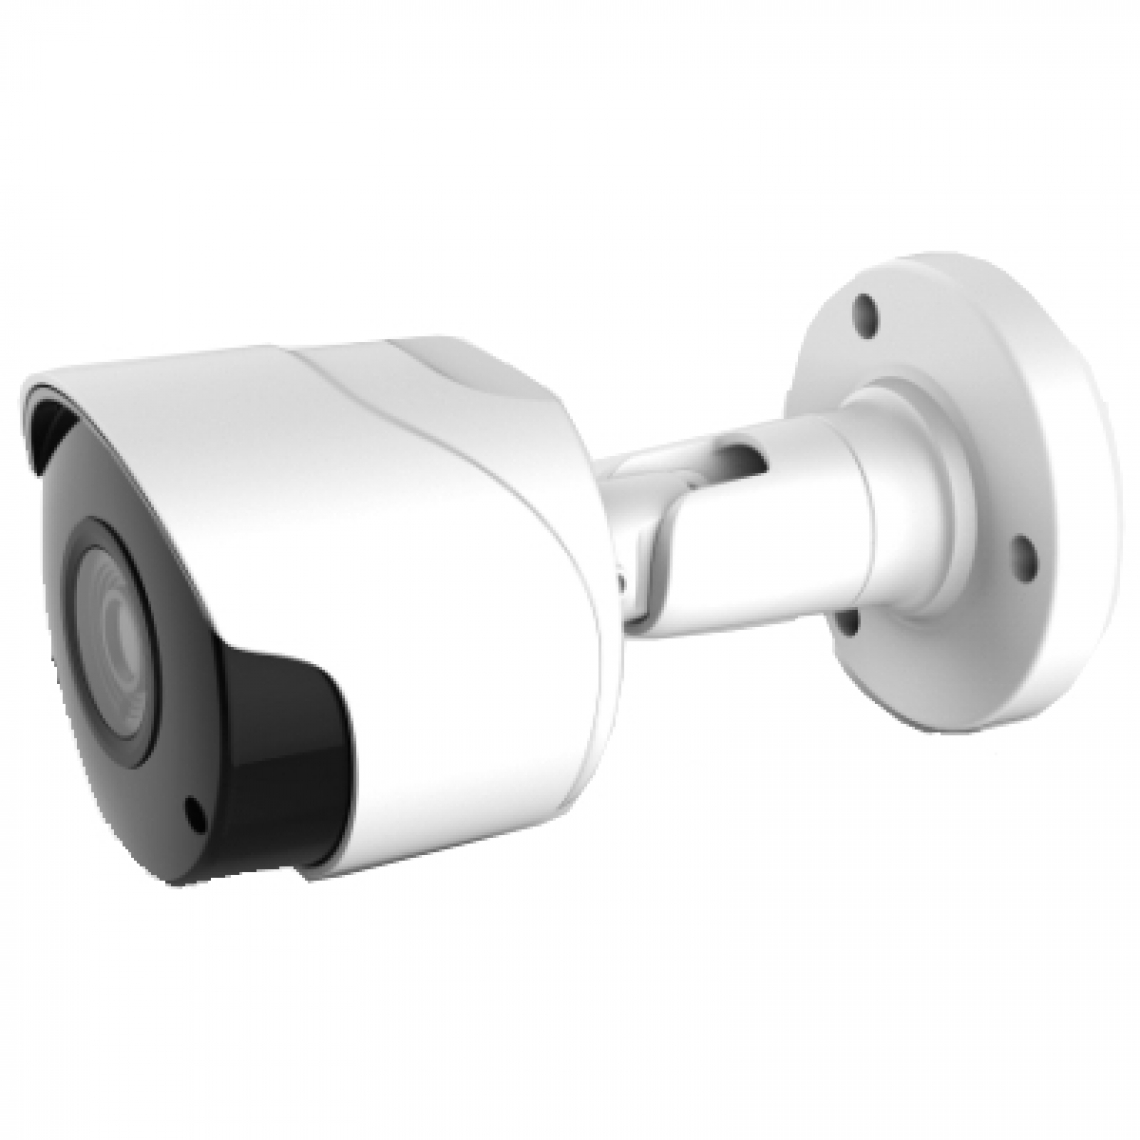 AHD BULLET CAMERA FIXED LENS - TVT86FAHD/5